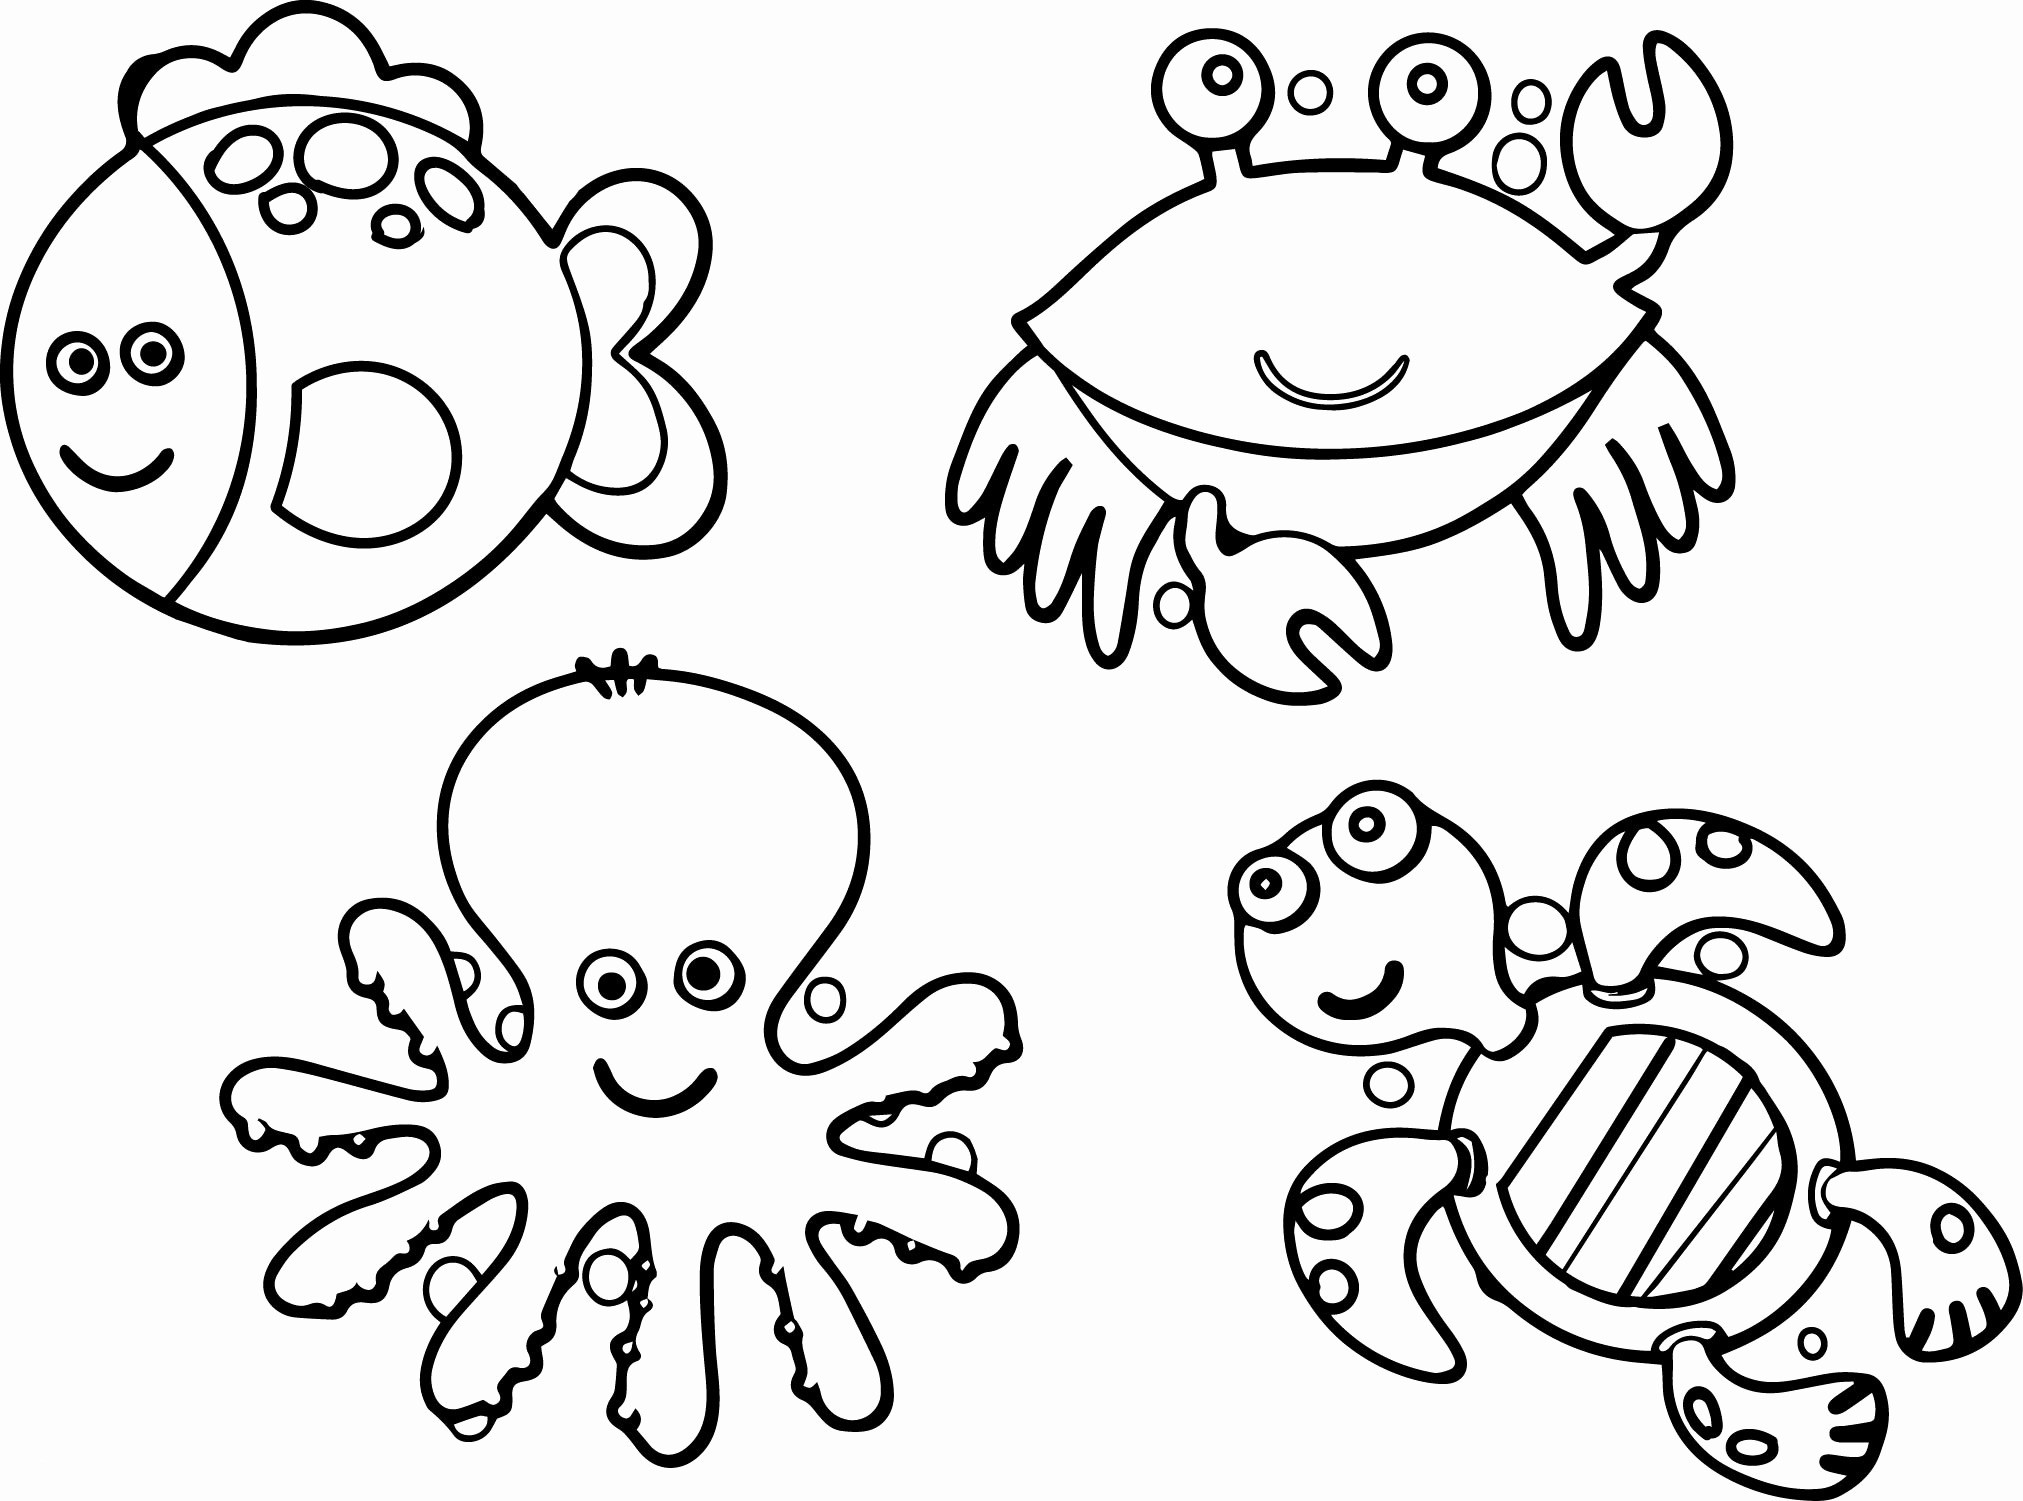 coloring the animal wild animal coloring pages best coloring pages for kids the animal coloring